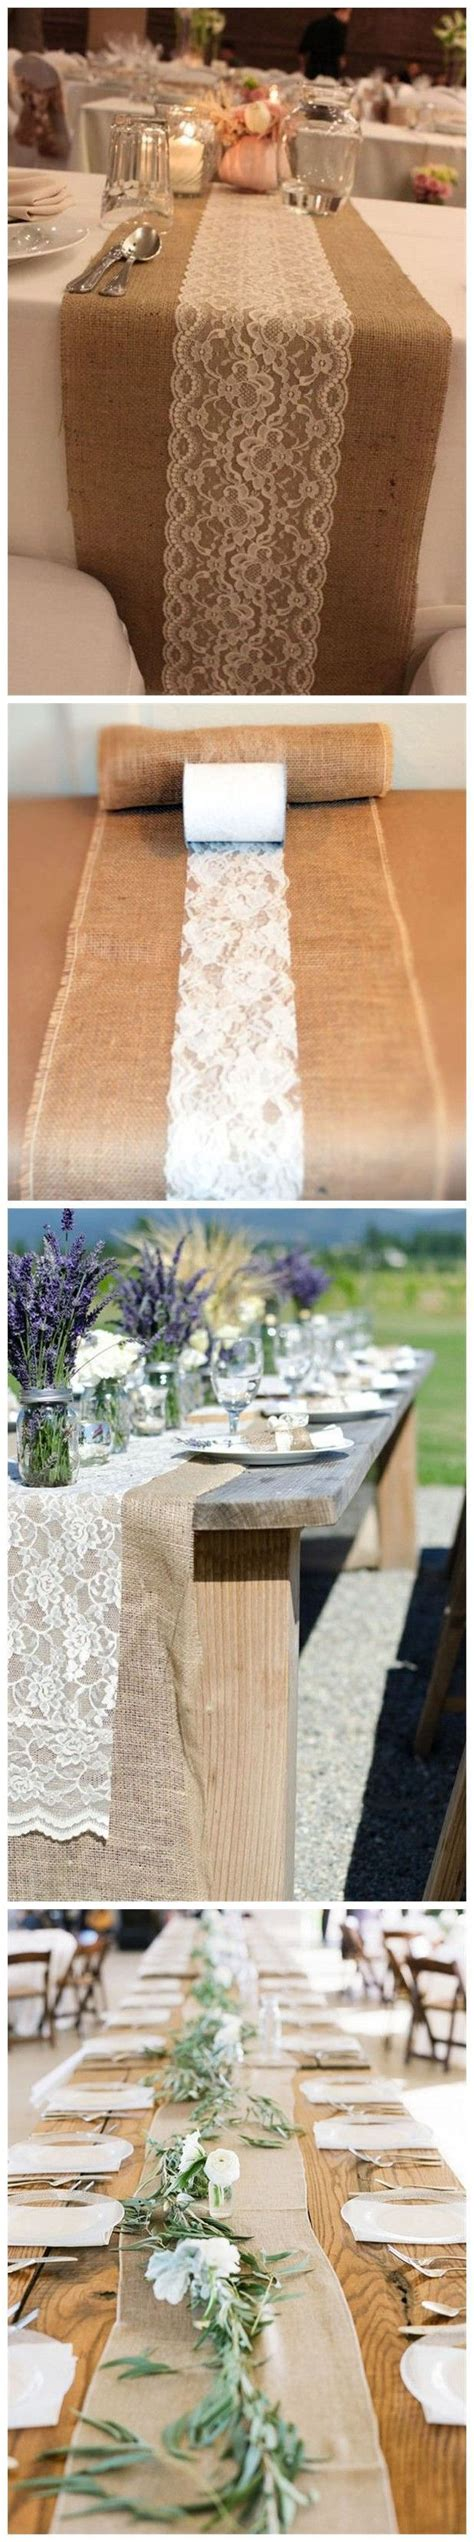 226 best diy wedding images on decor deco and tabletop